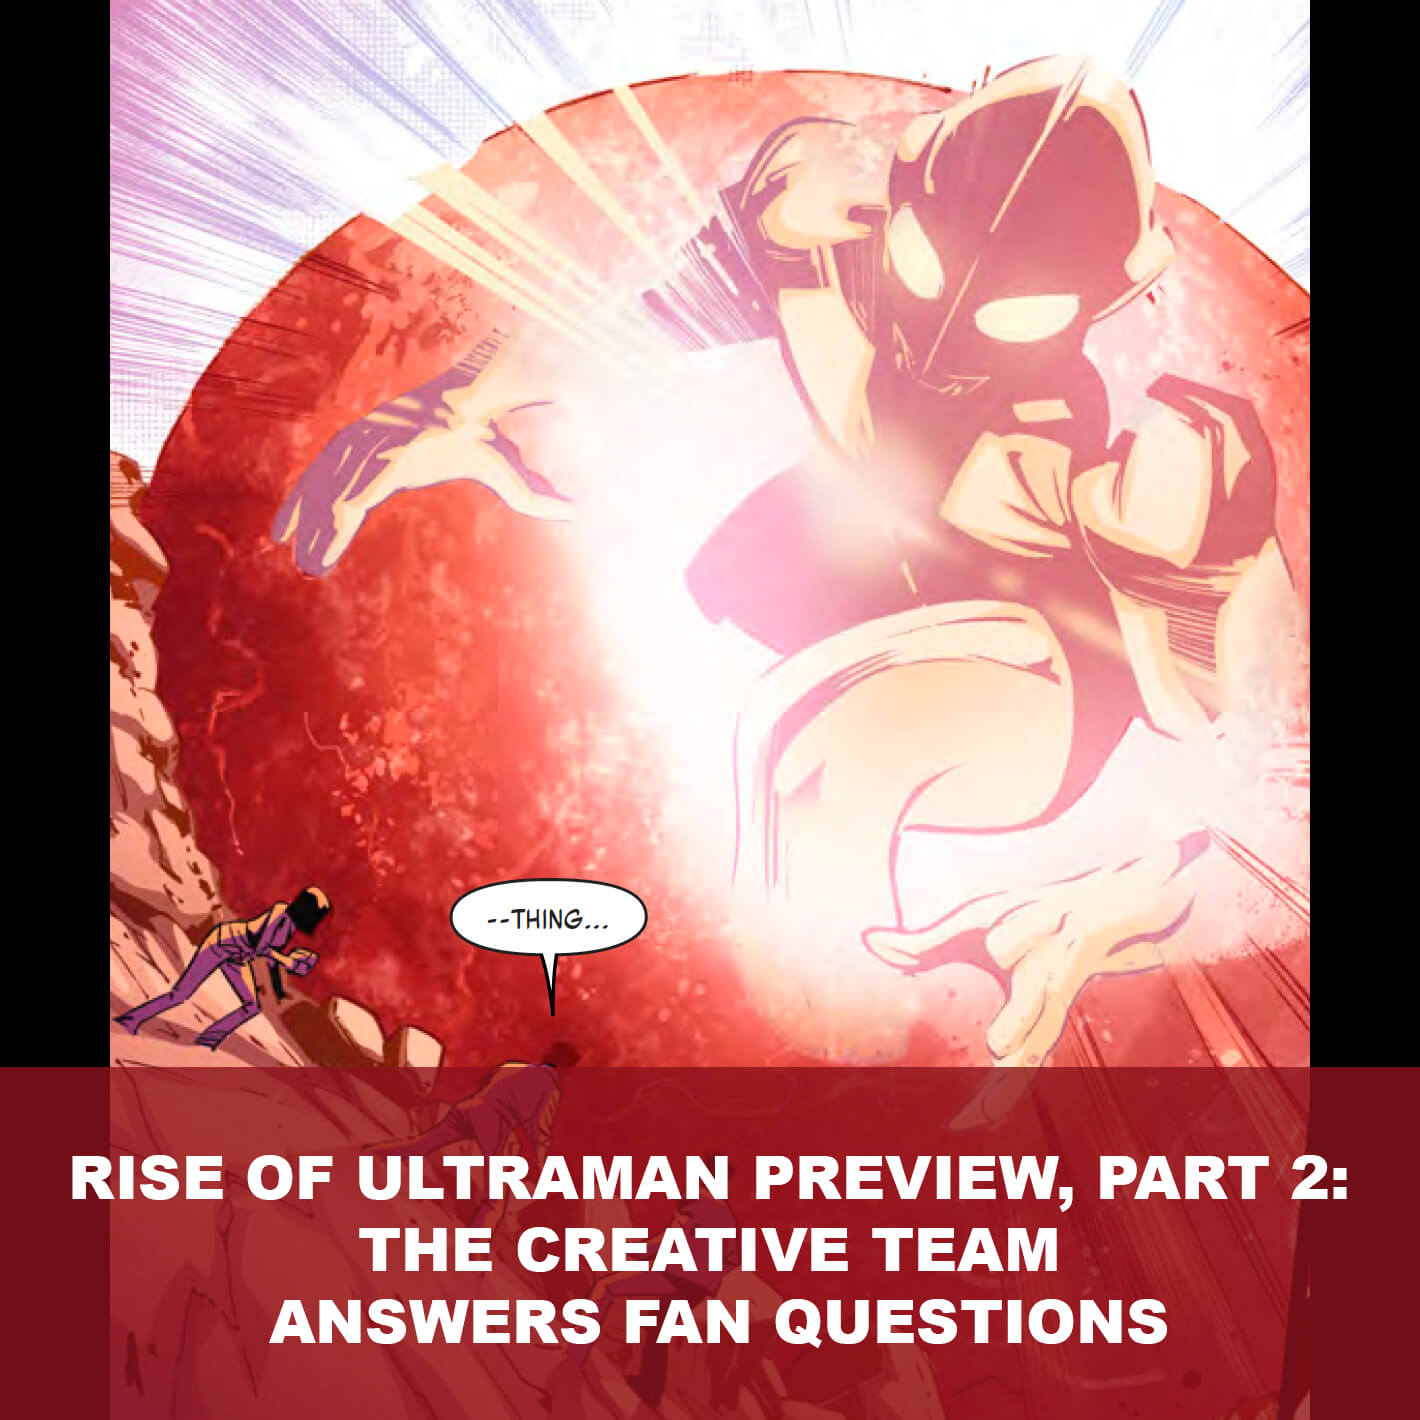 RISE OF ULTRAMAN PREVIEW, PART 2:THE CREATIVE TEAM ANSWERS FAN QUESTIONS